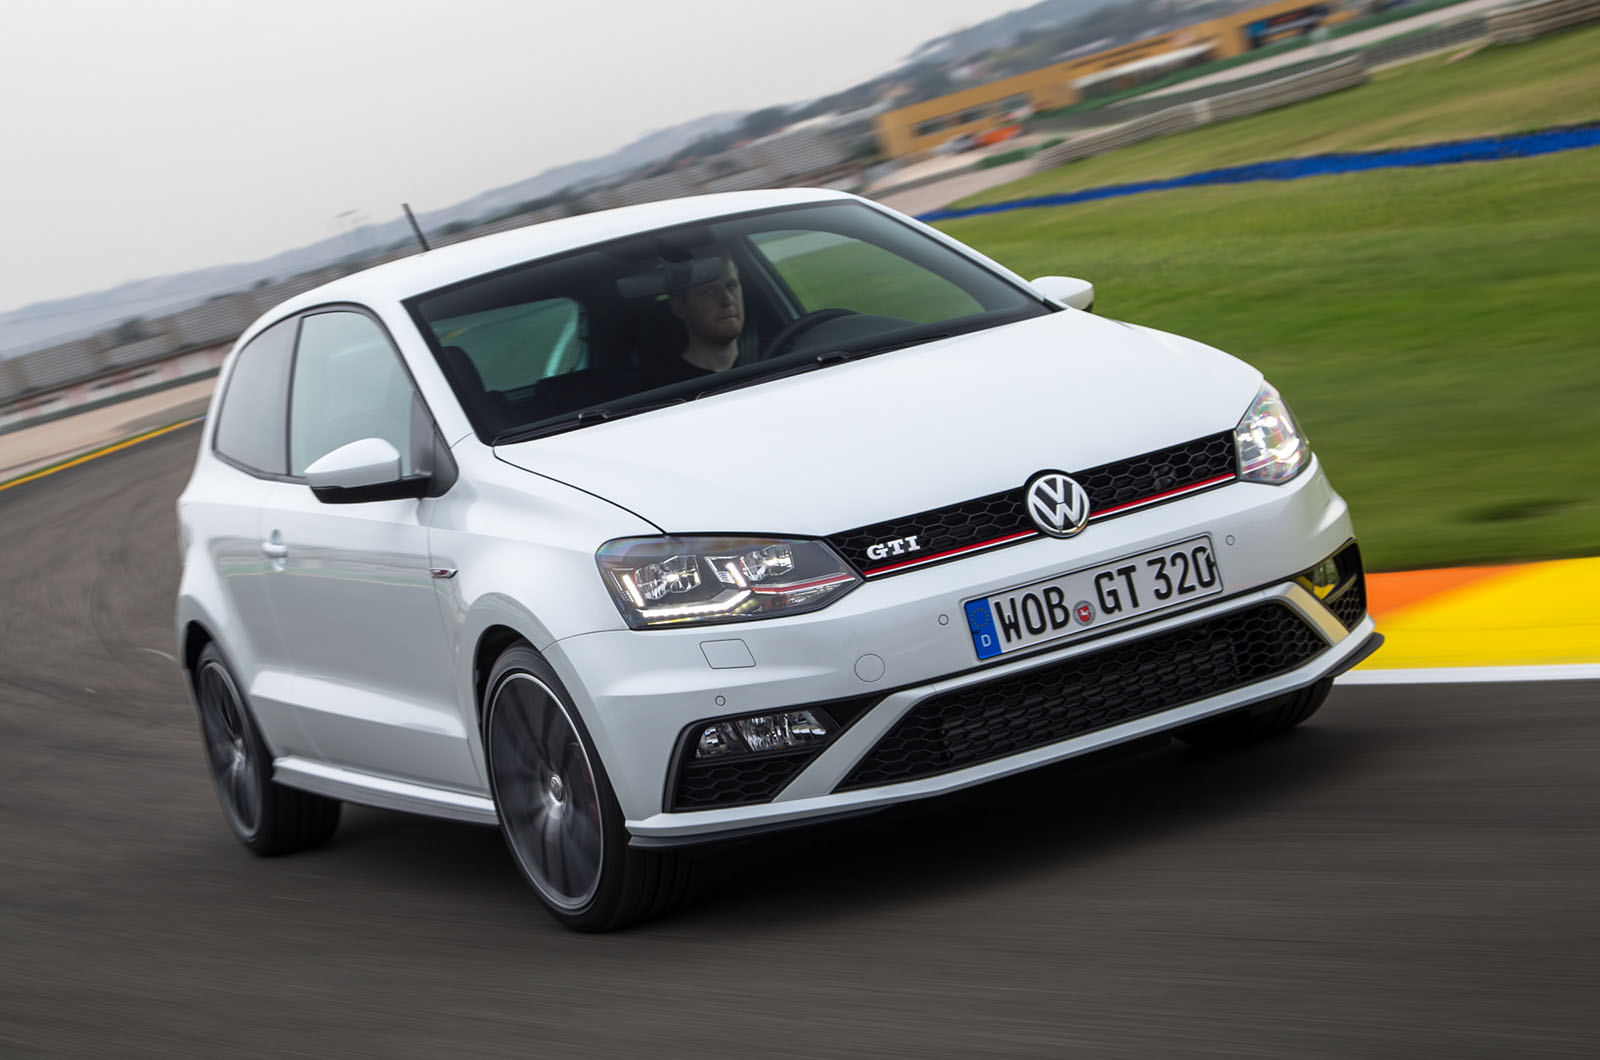 2014 volkswagen polo gti 3dr manual review autocar. Black Bedroom Furniture Sets. Home Design Ideas